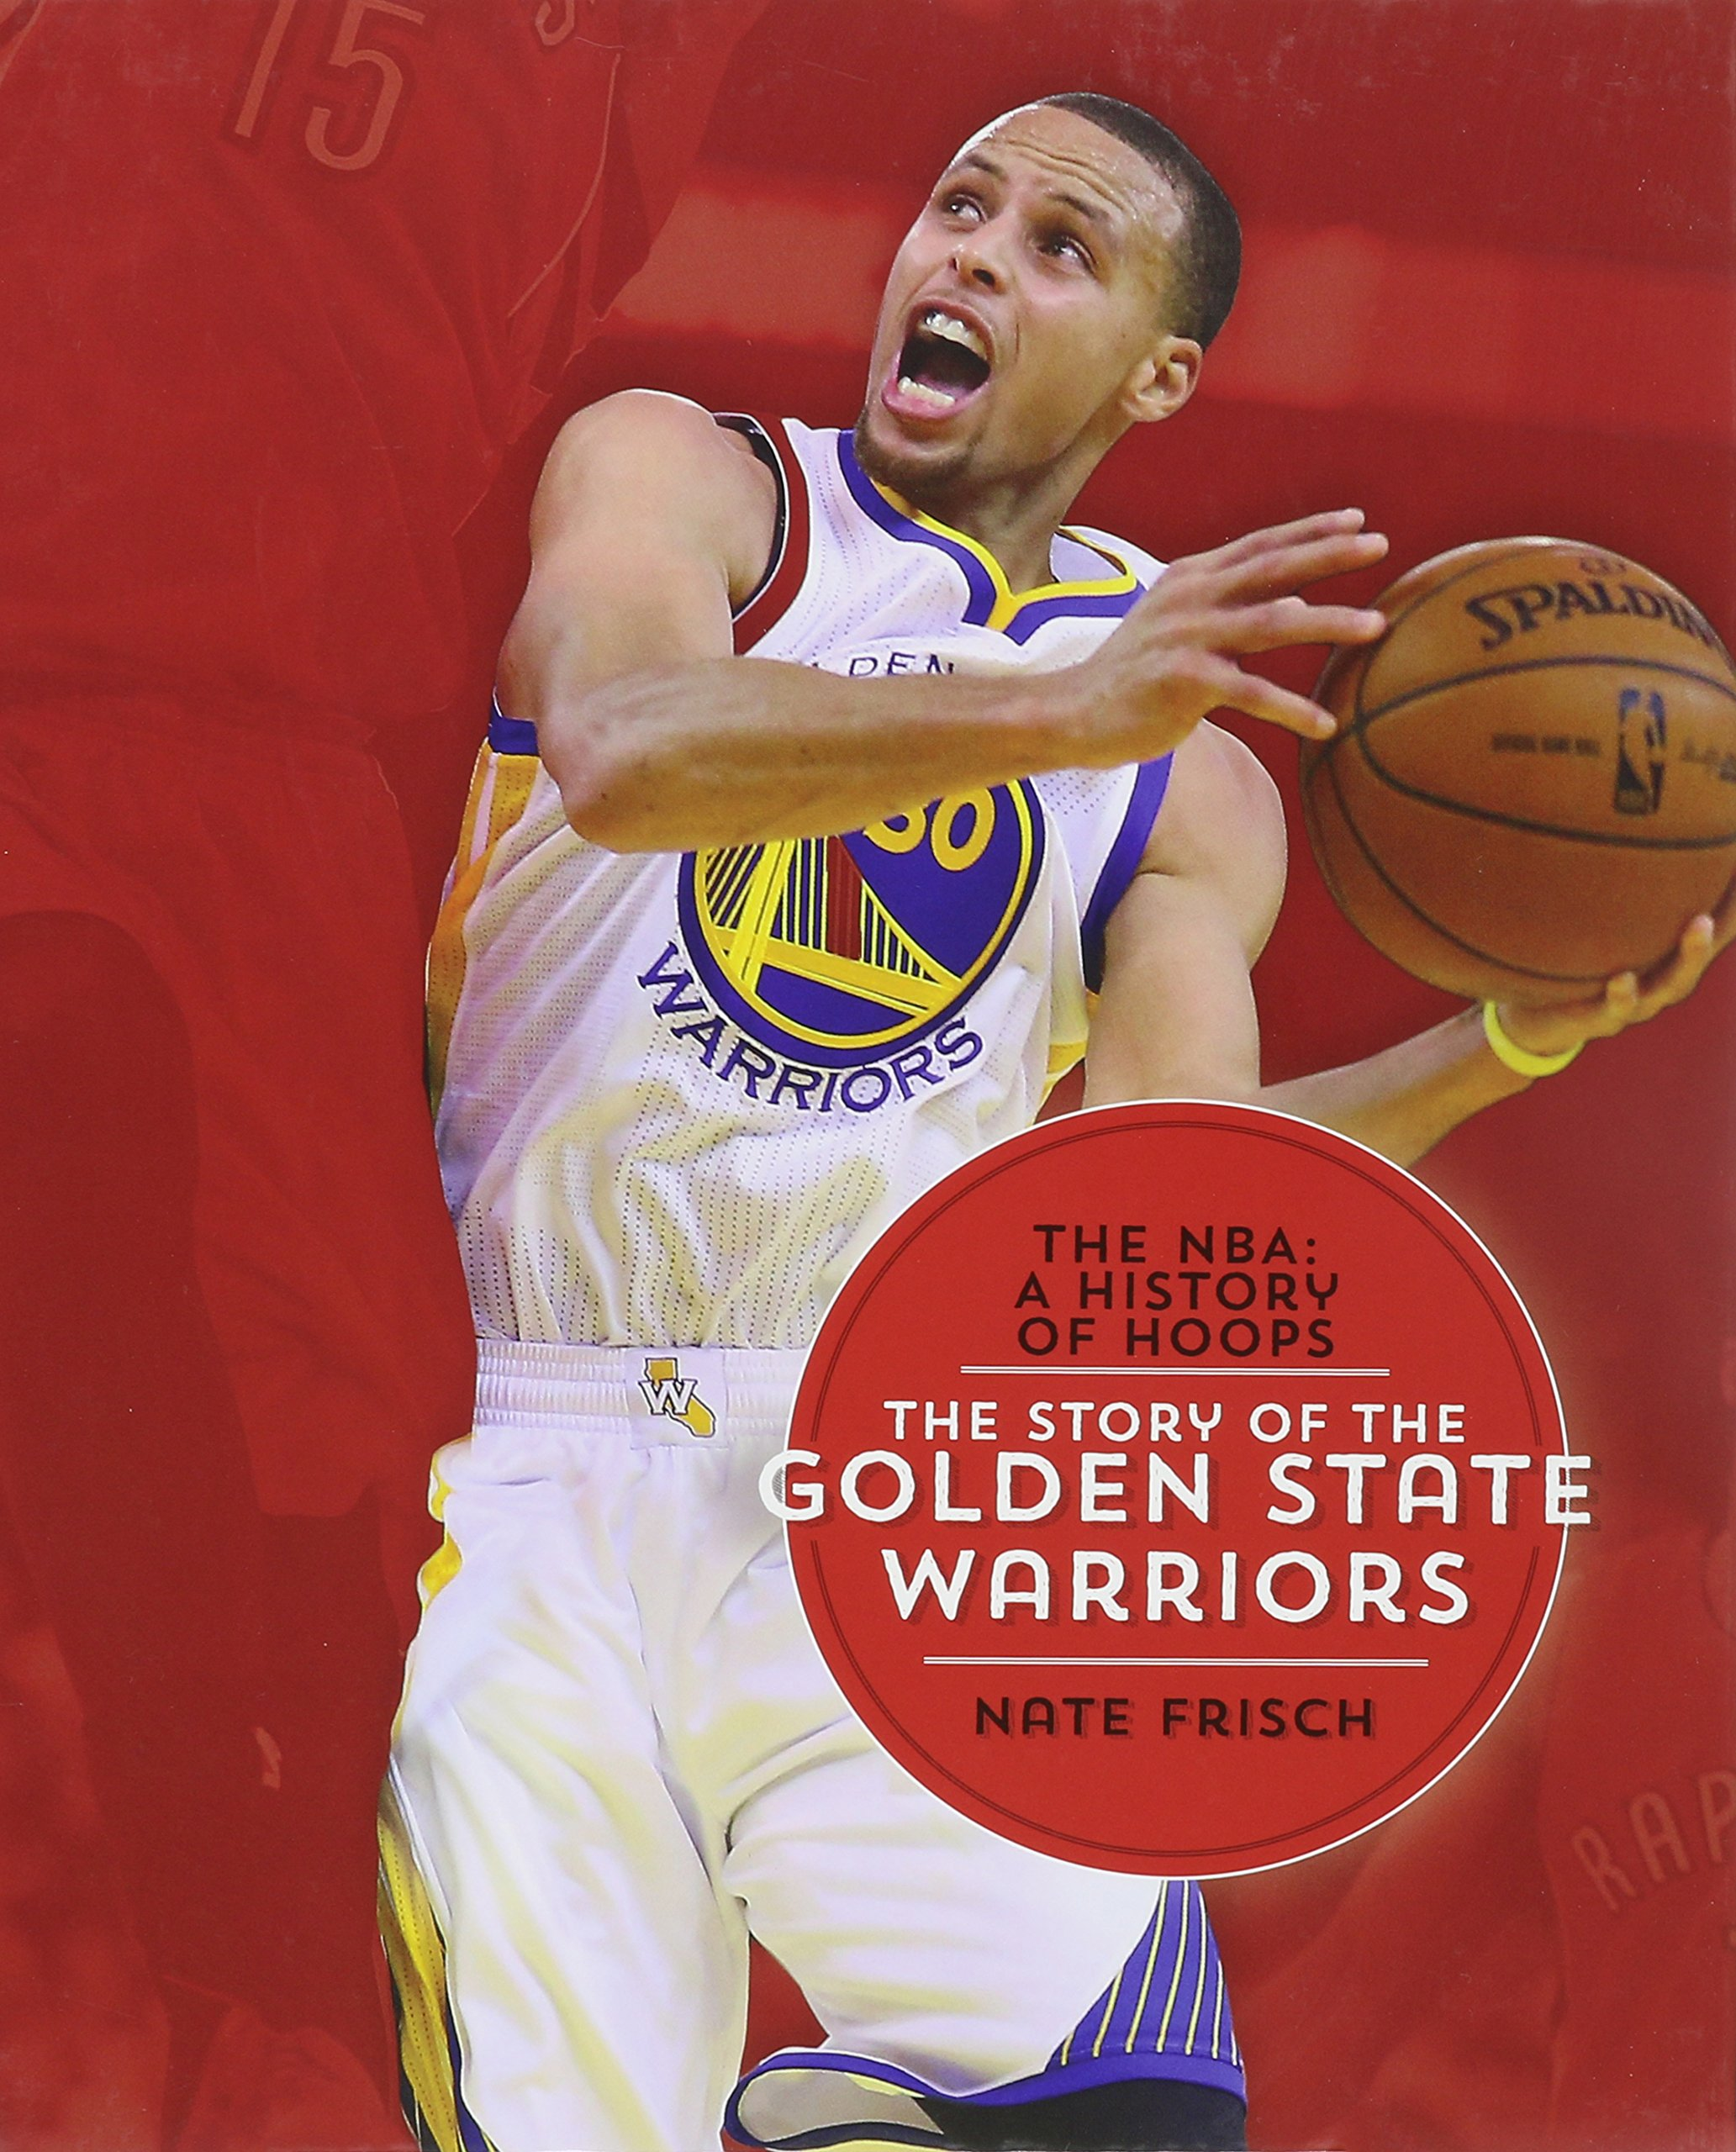 The Story of the Golden State Warriors (The NBA: A History of Hoops)